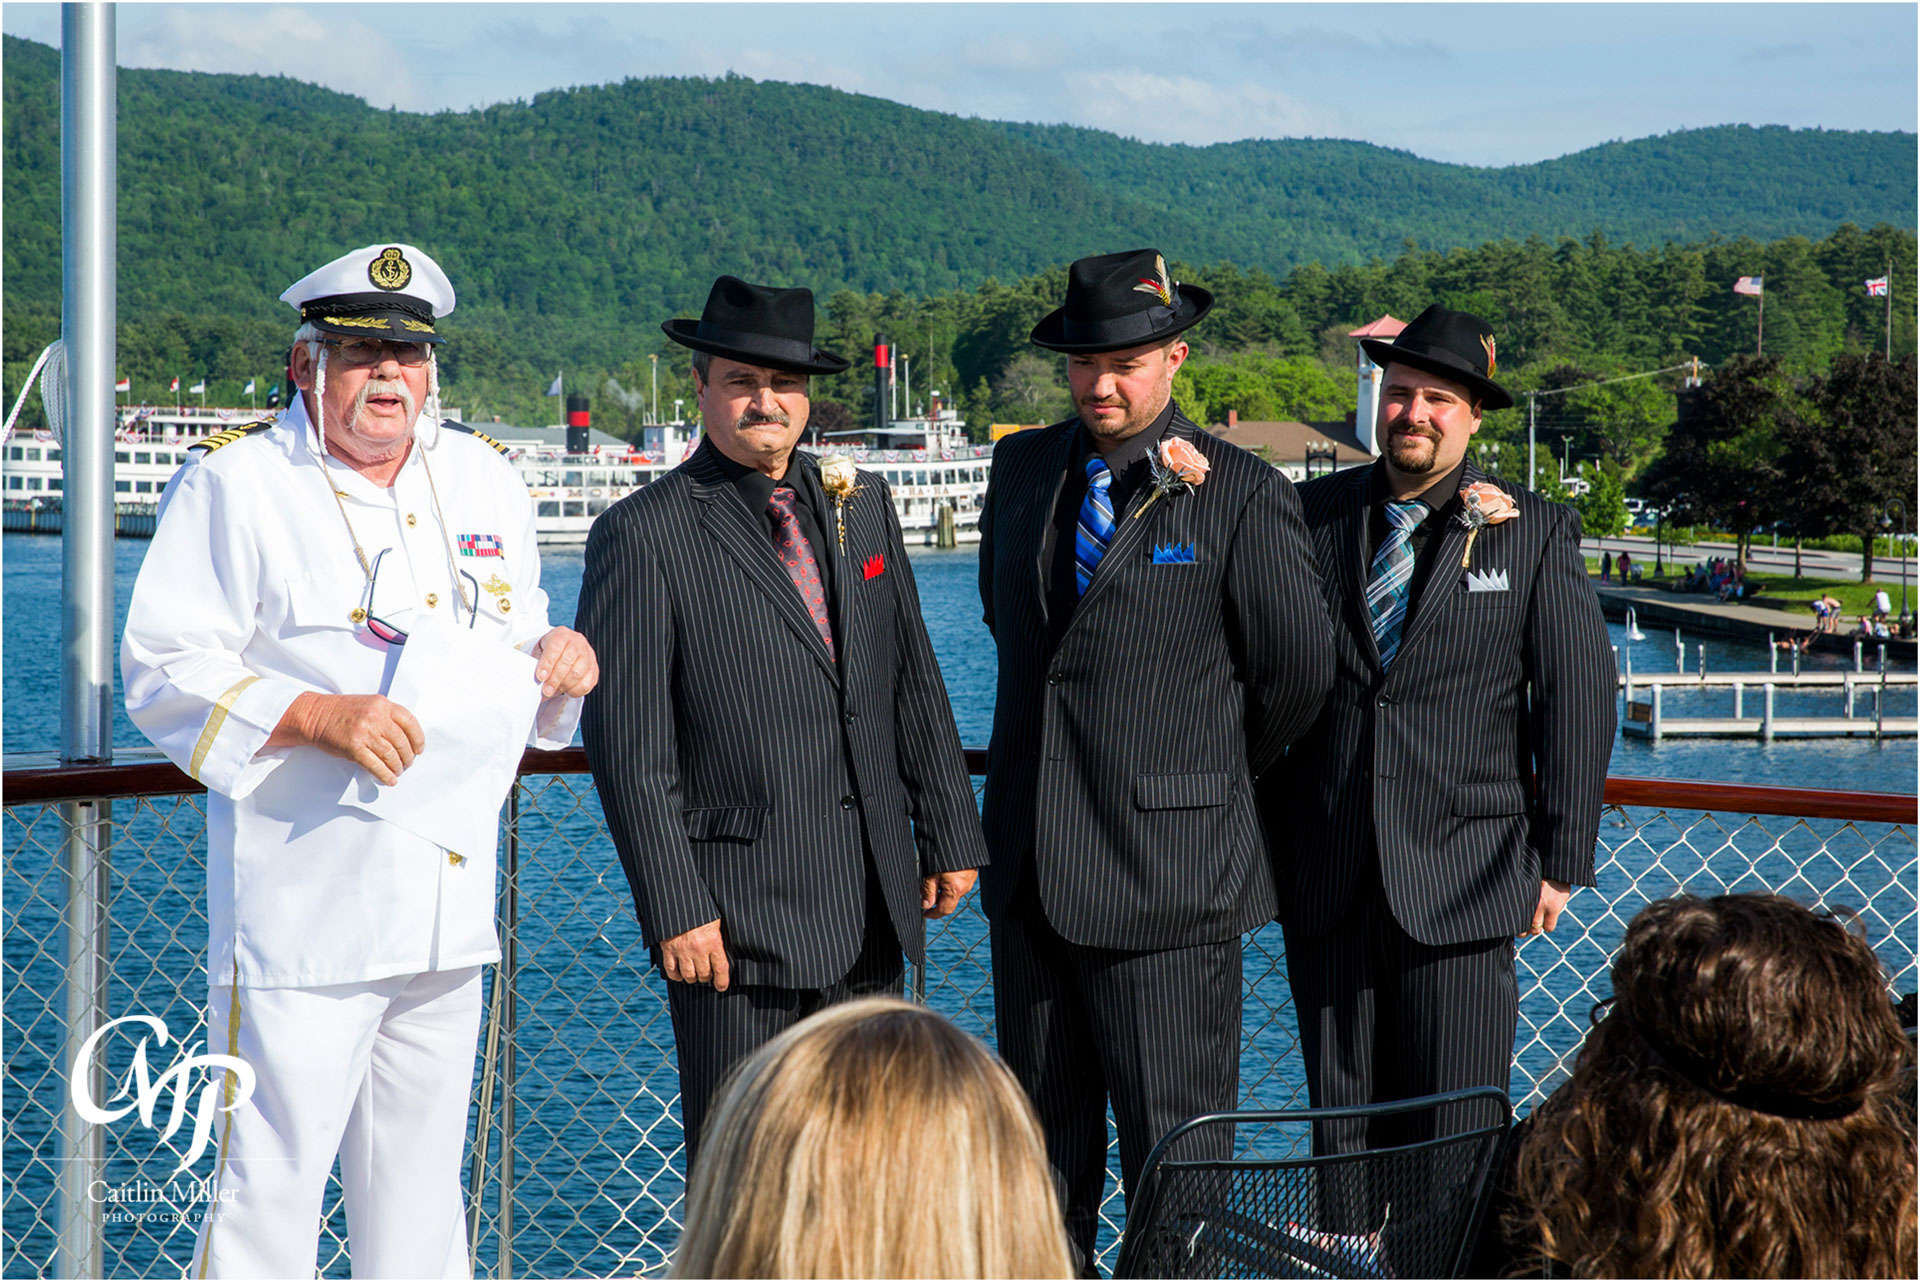 bombard-12.jpg from Jan and Robert's vow renewal on shoreline Cruise's Adirondac Boat on Lake George, NY by Saratoga Wedding Photographer Caitlin Miller Photography. Lake George Wedding Photographer. Stamford wedding photographer. Albany wedding photographer. Shoreline Cruises Wedding Photographer. Saratoga Wedding Photographer